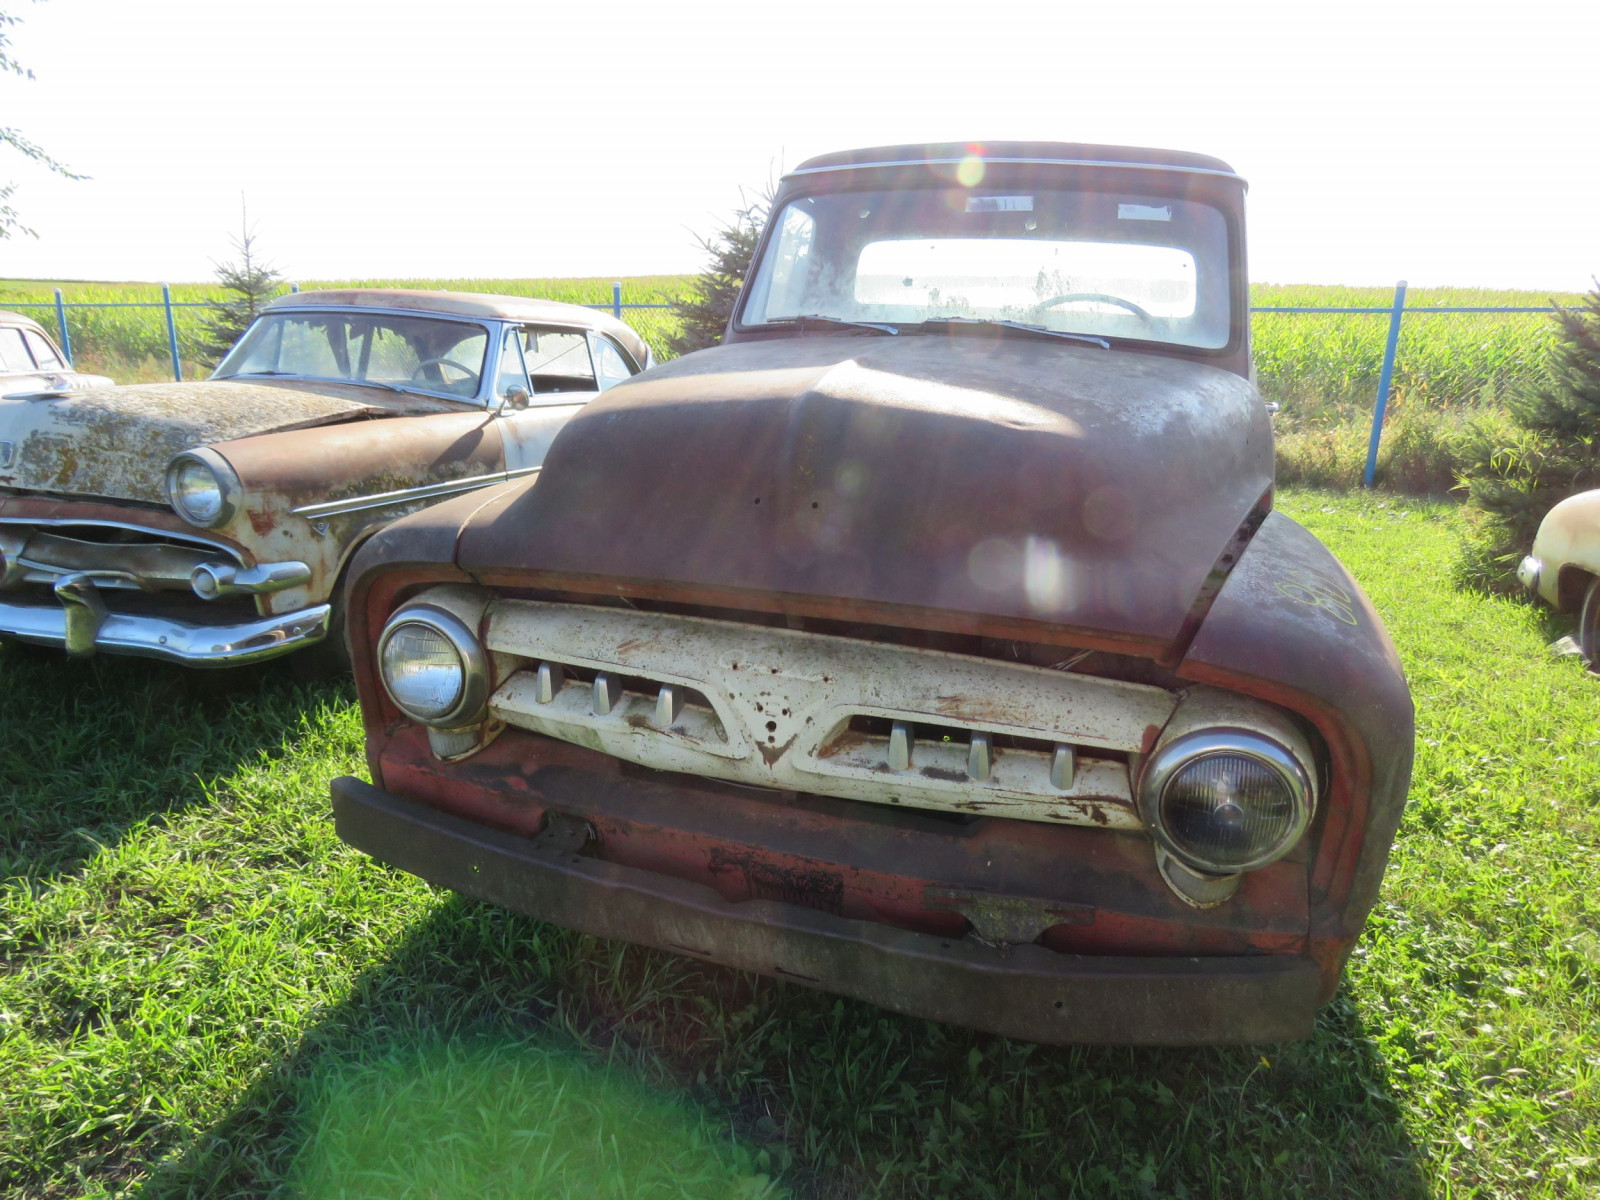 1953 Ford F100 Pickup for Rod or restore - Image 2